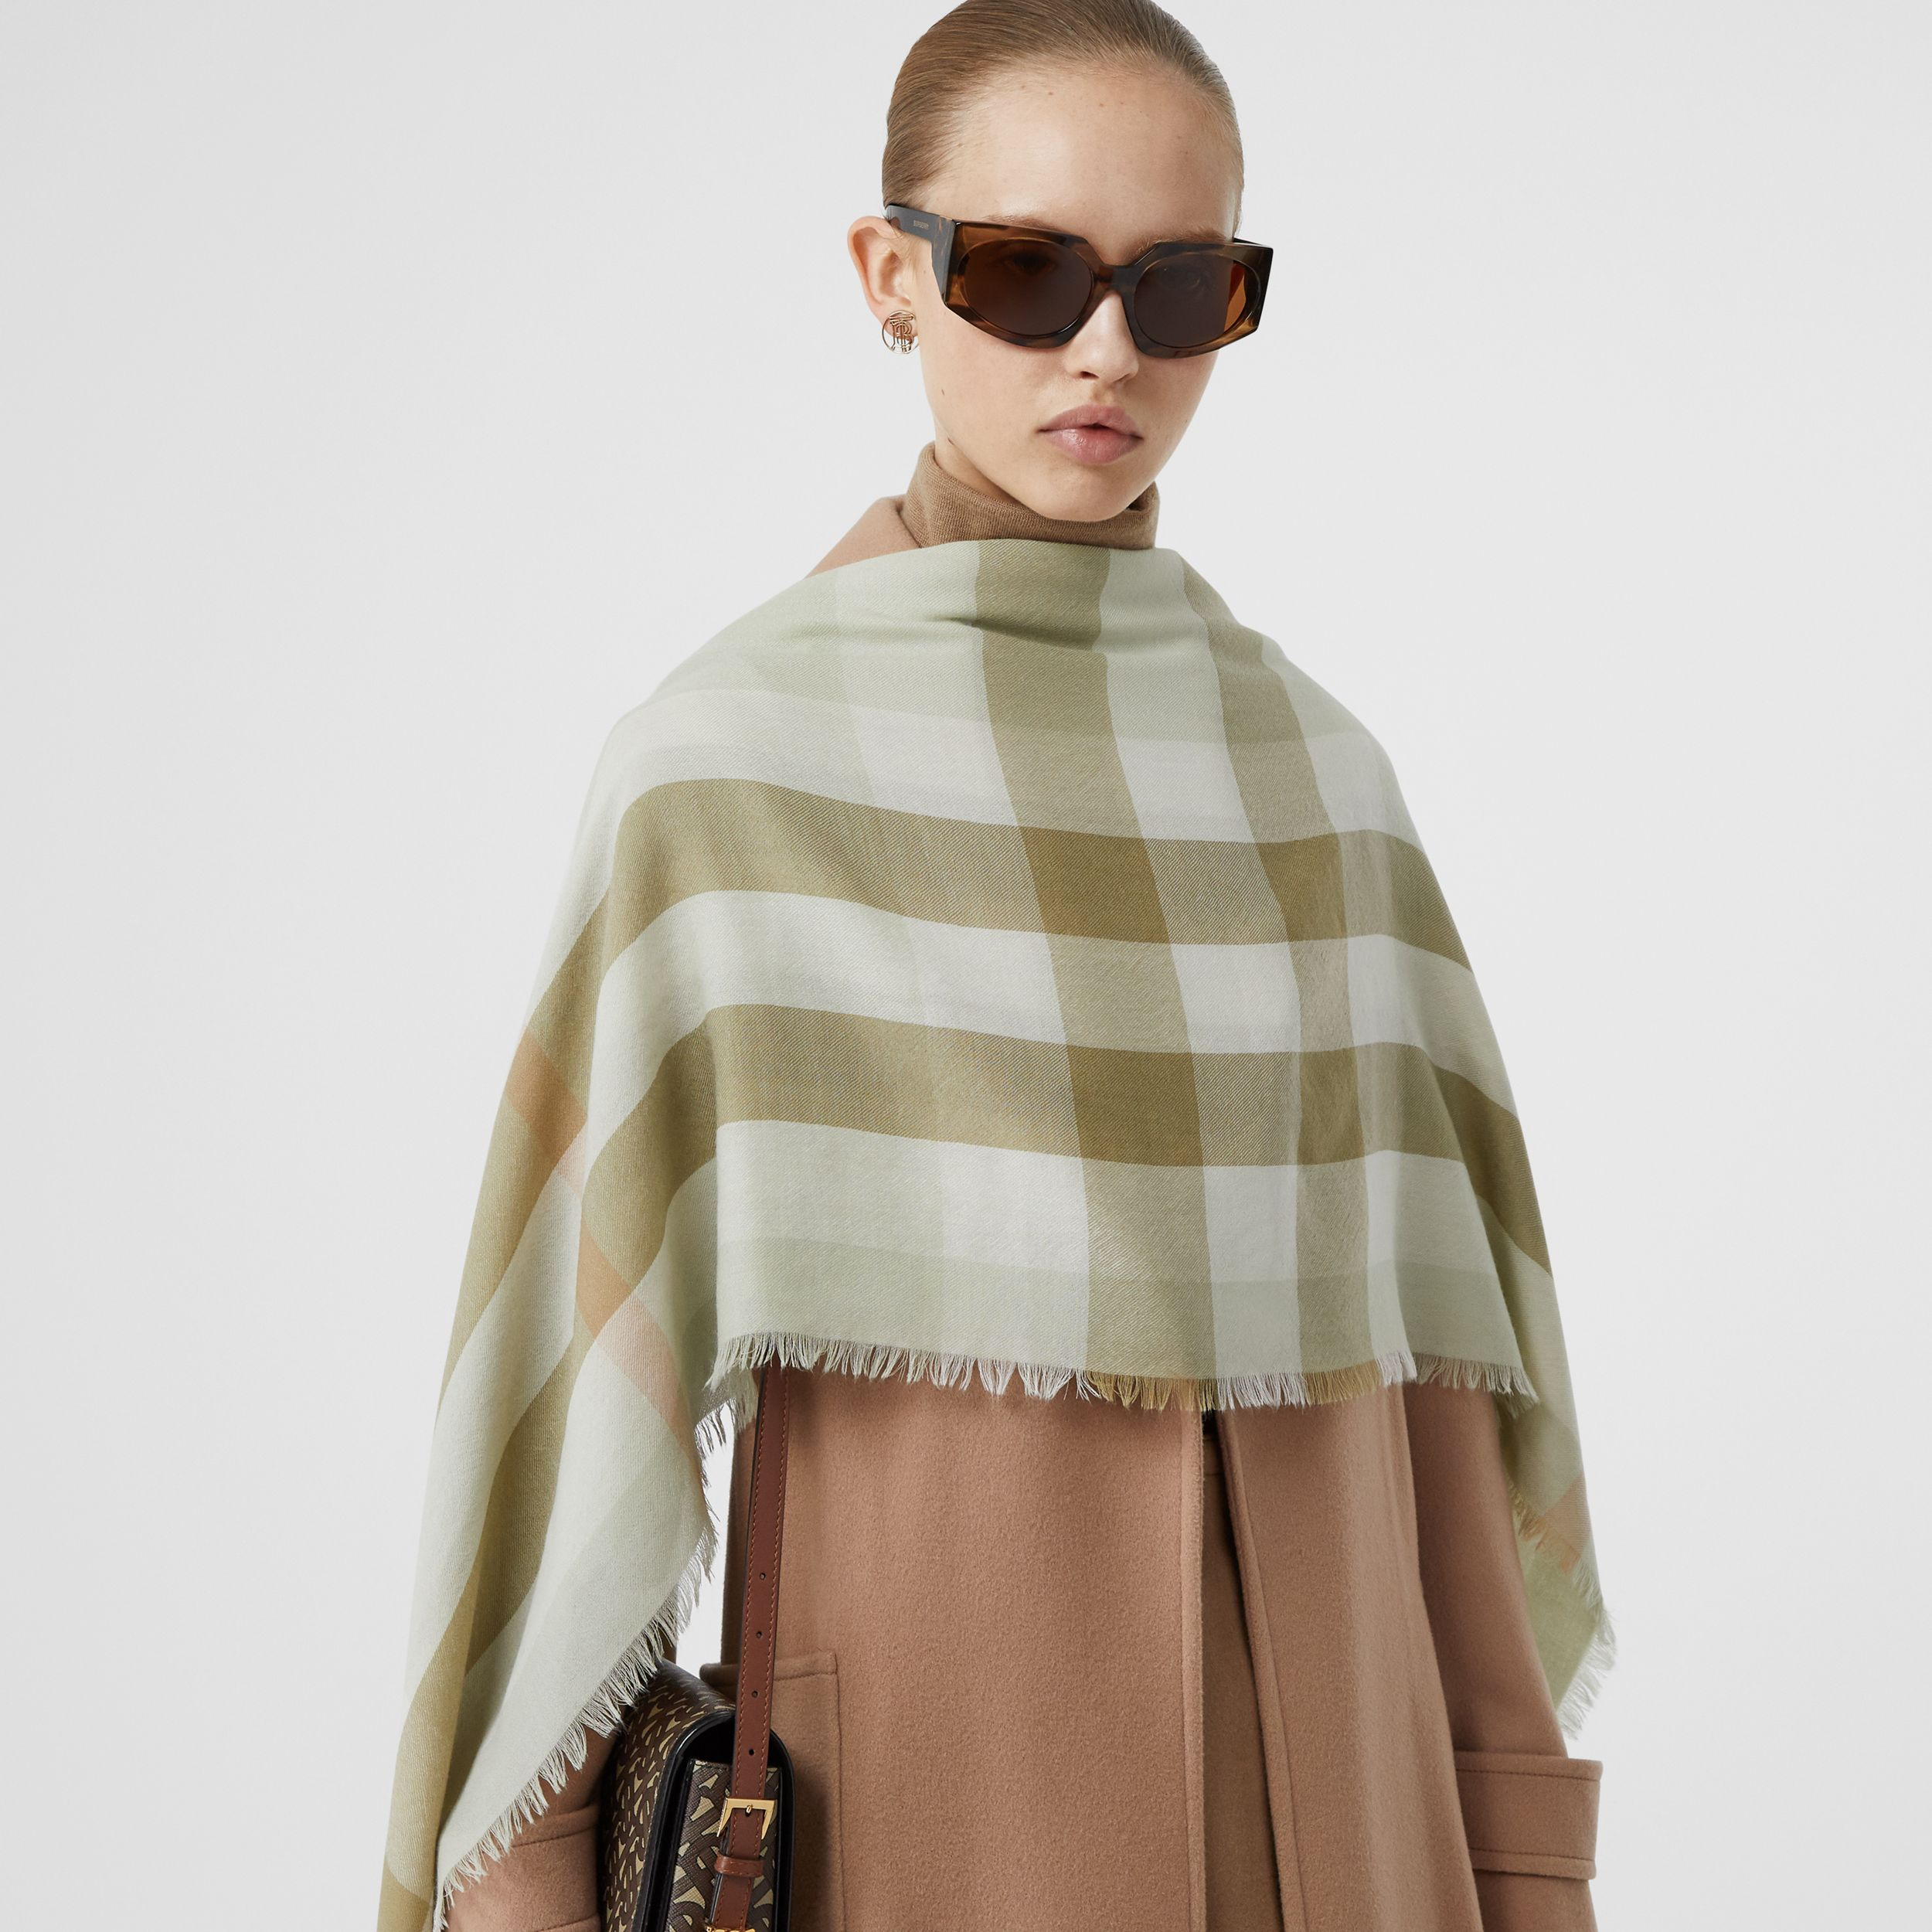 Lightweight Check Cashmere Scarf in Pale Apple Green | Burberry Canada - 3